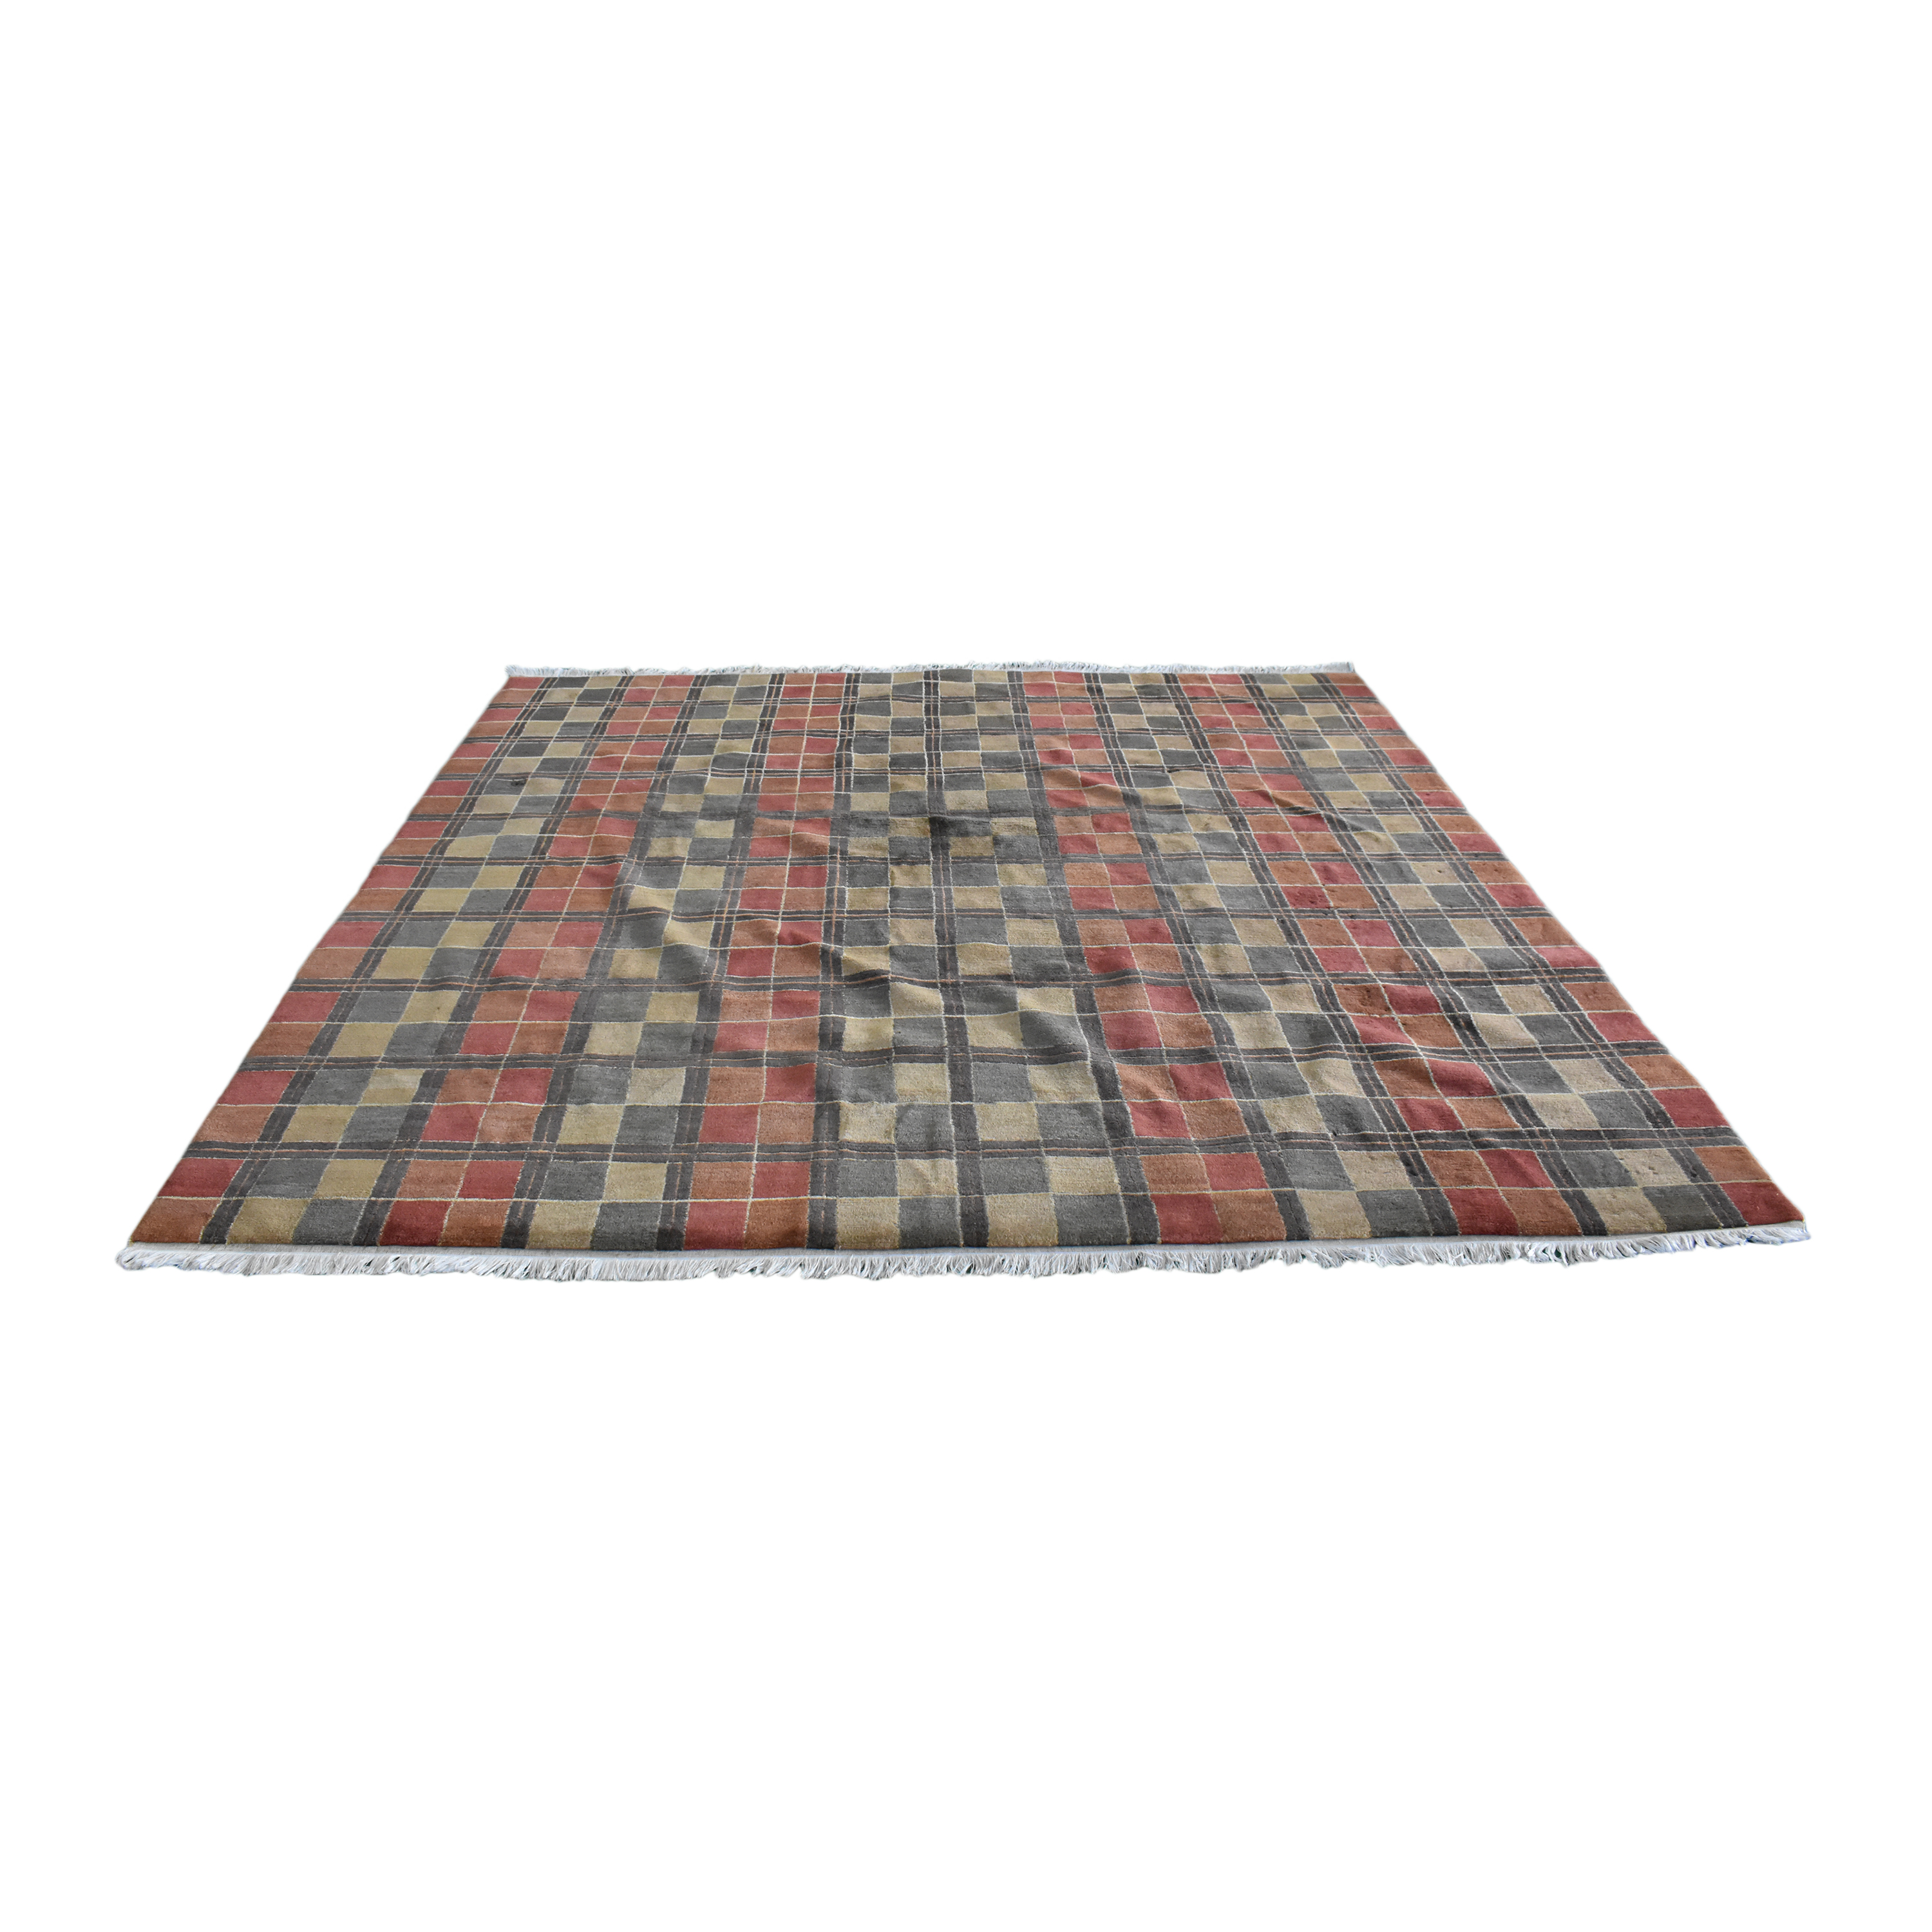 Tufenkian Tufenkian Patterned Area Rug multi